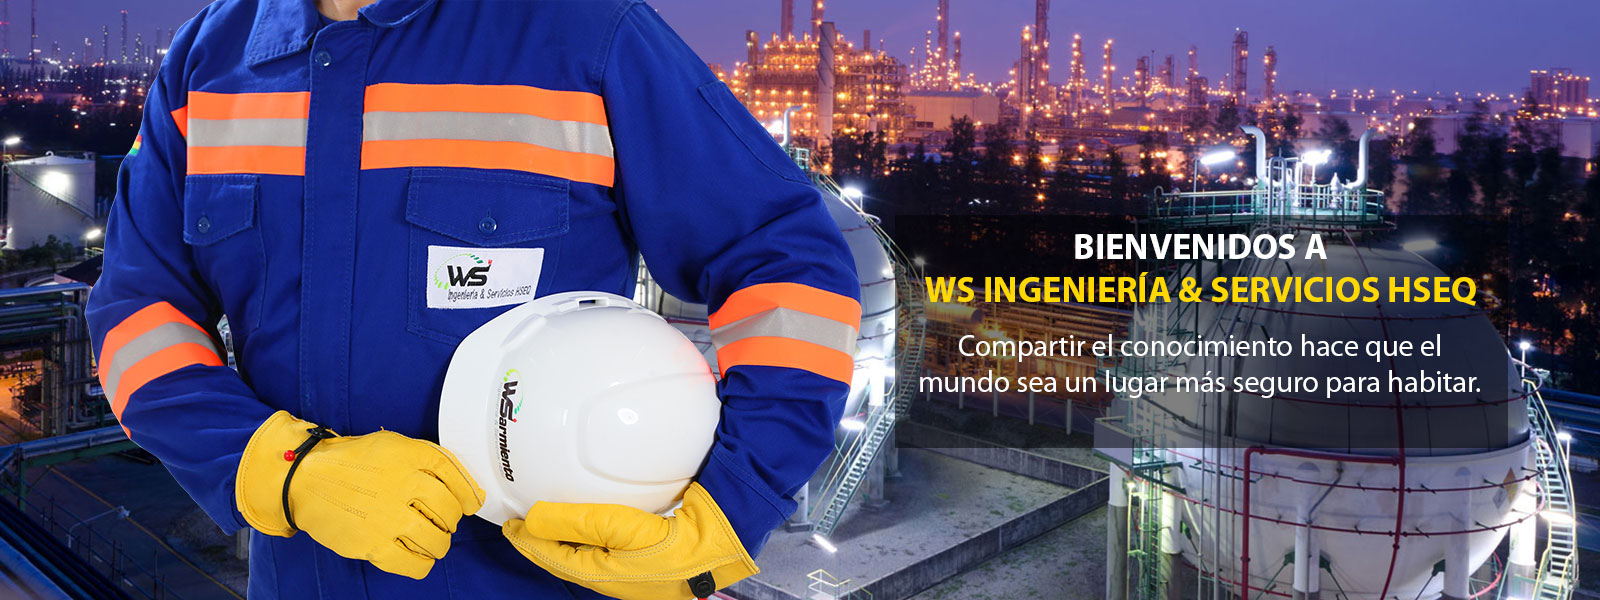 wsafe-industrias-gaseoductos